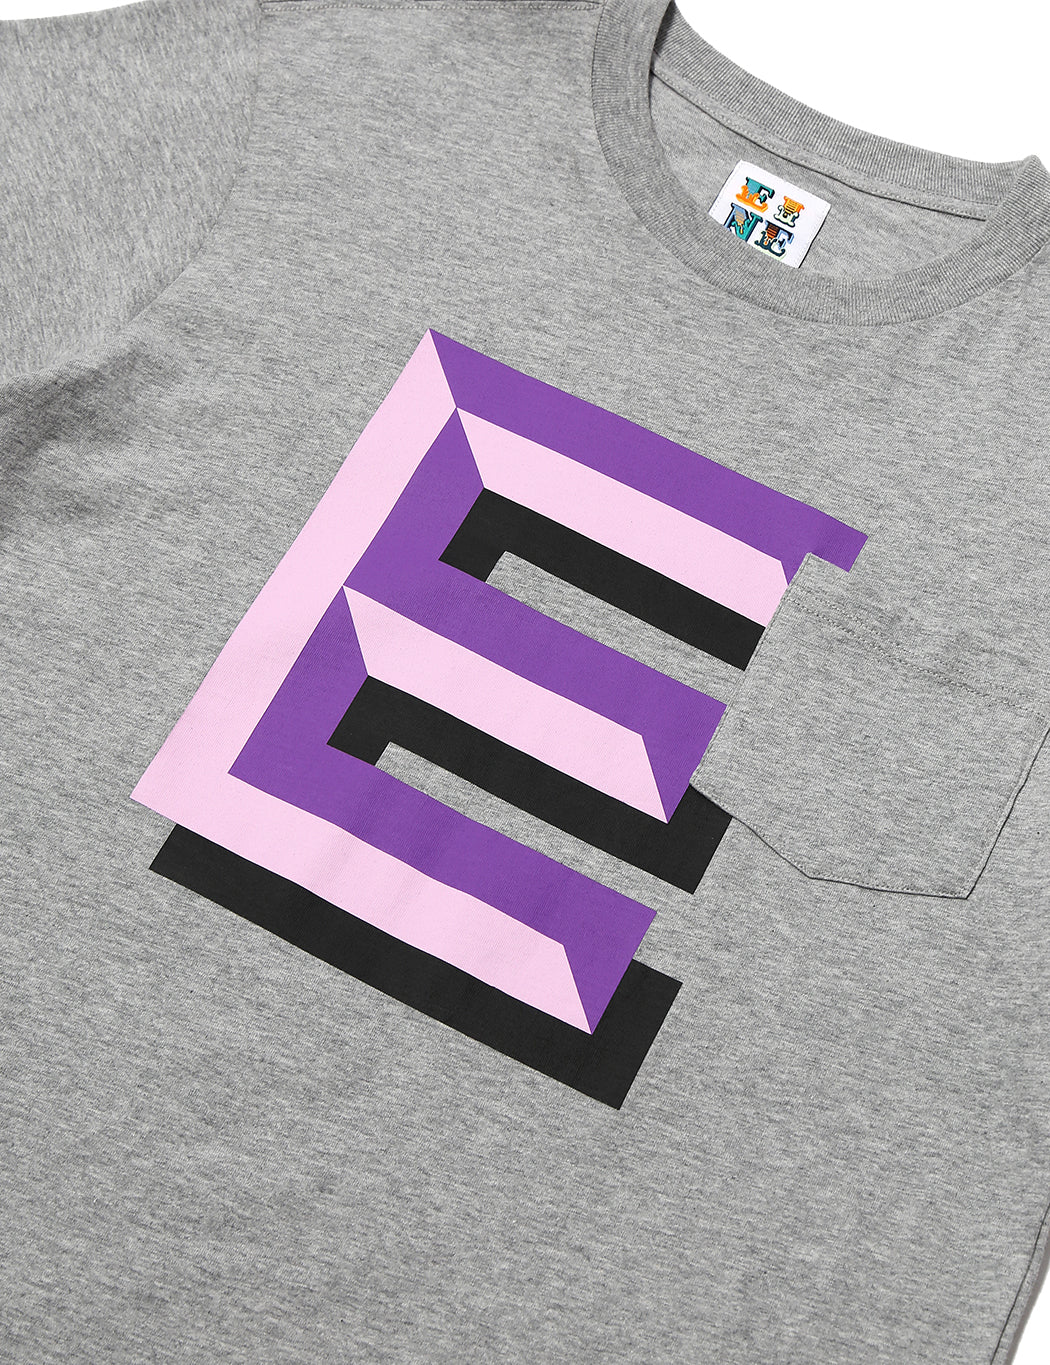 Gaspipe E Pocket S/S T-Shirt - Heather Grey - Eine London by Ben Eine